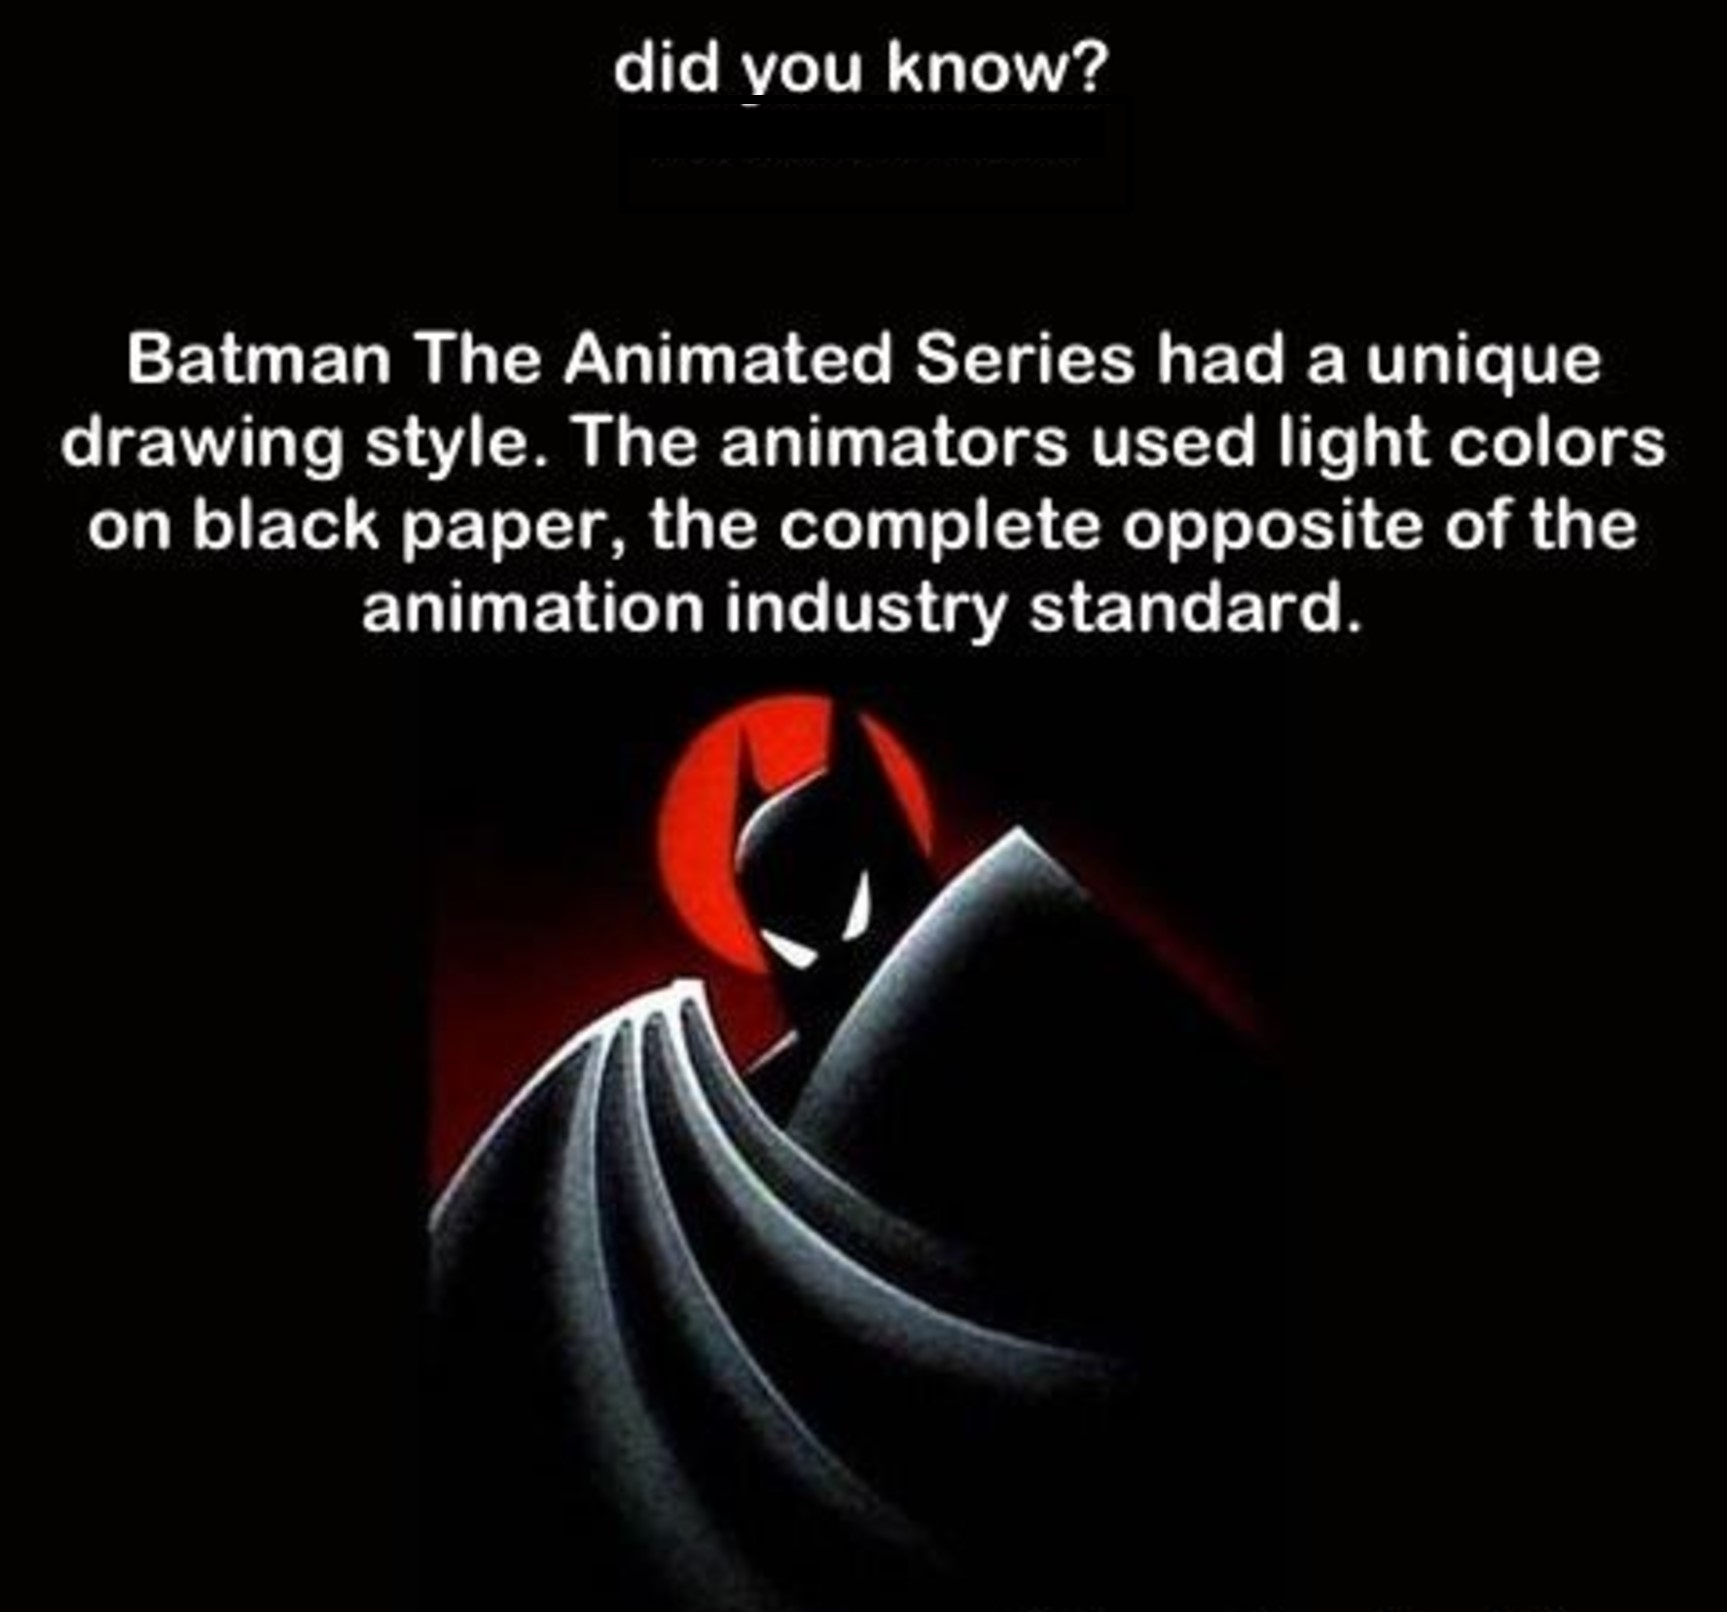 35 - Fun fact about Batman the Animated Series being drawing using light colors on dark paper, the opposite of the standard in the undustry.